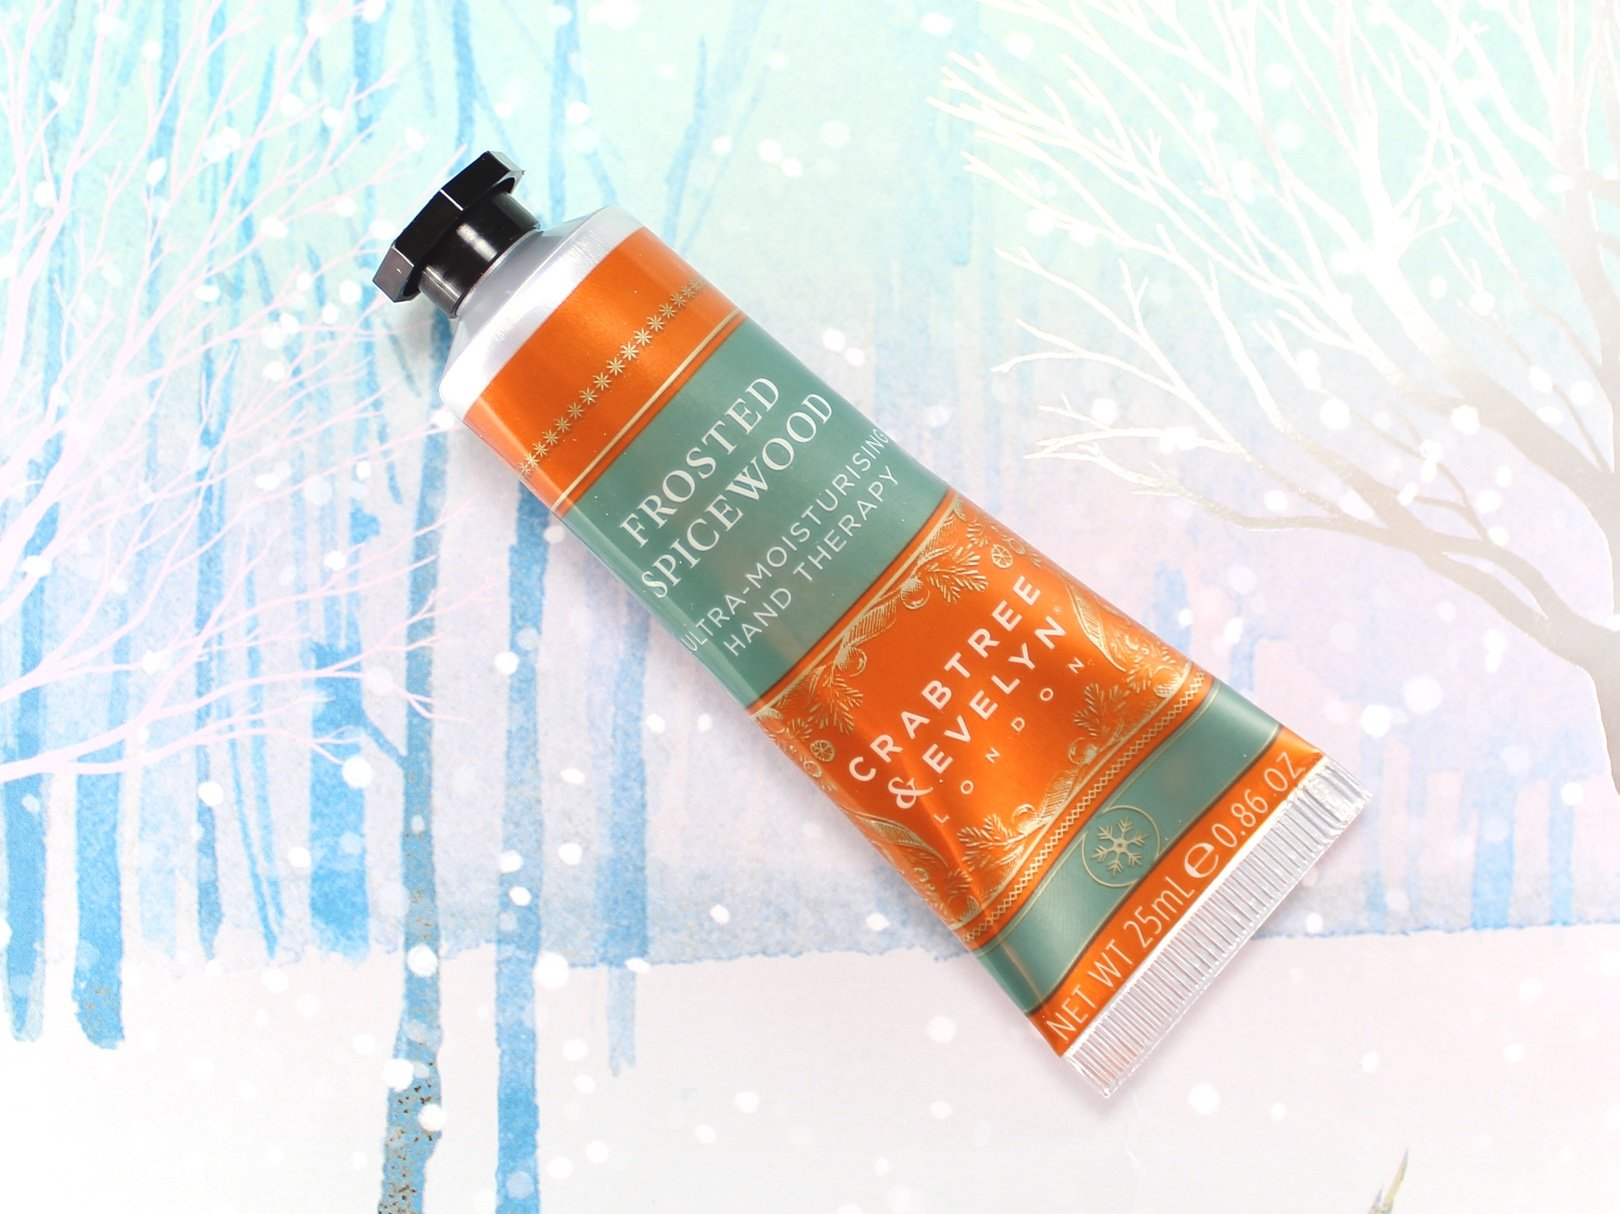 12 days of crabtree & evelyn advent calendar day 8